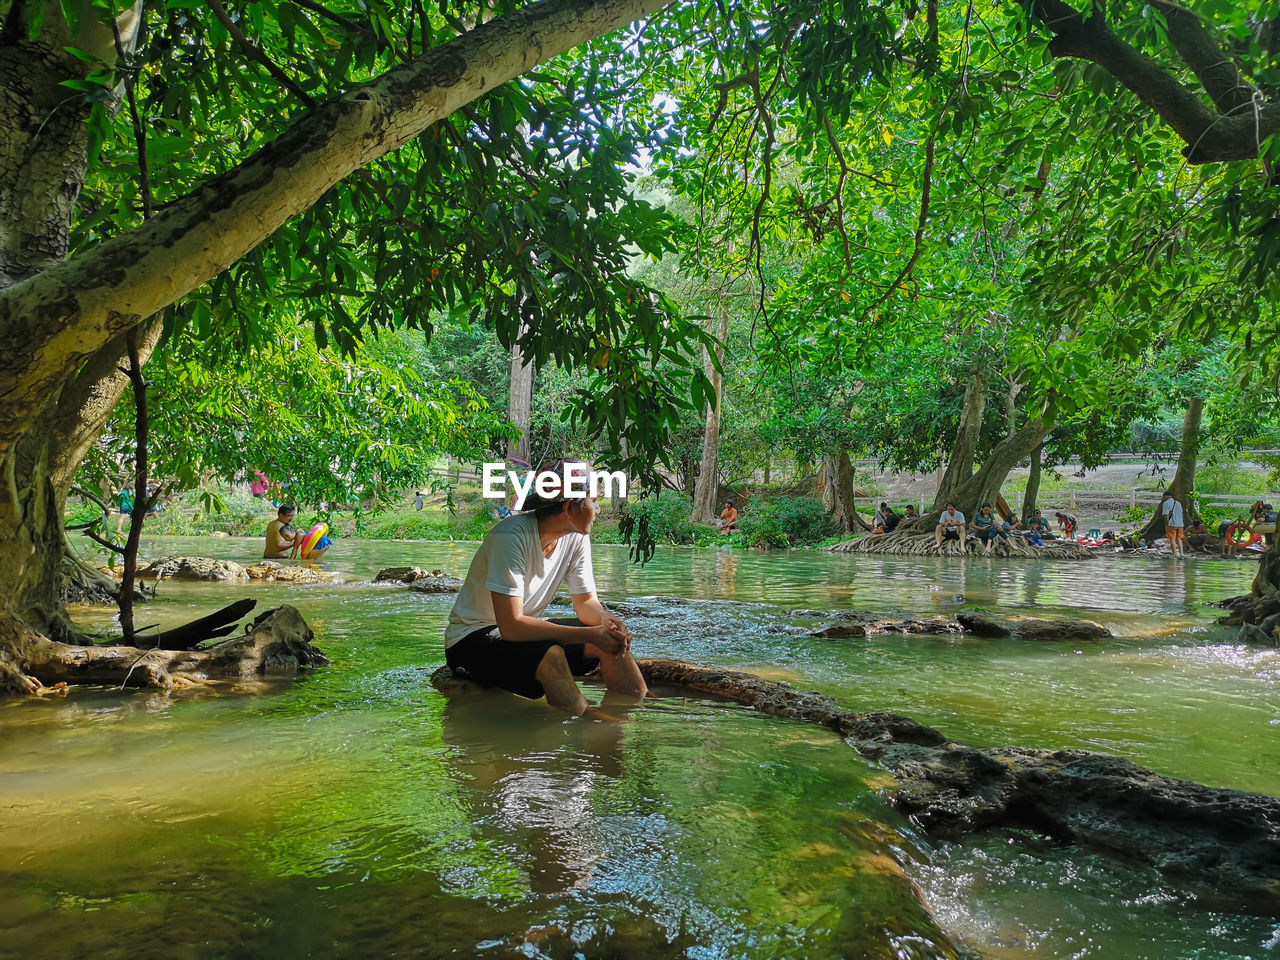 YOUNG WOMAN SITTING BY TREE IN WATER